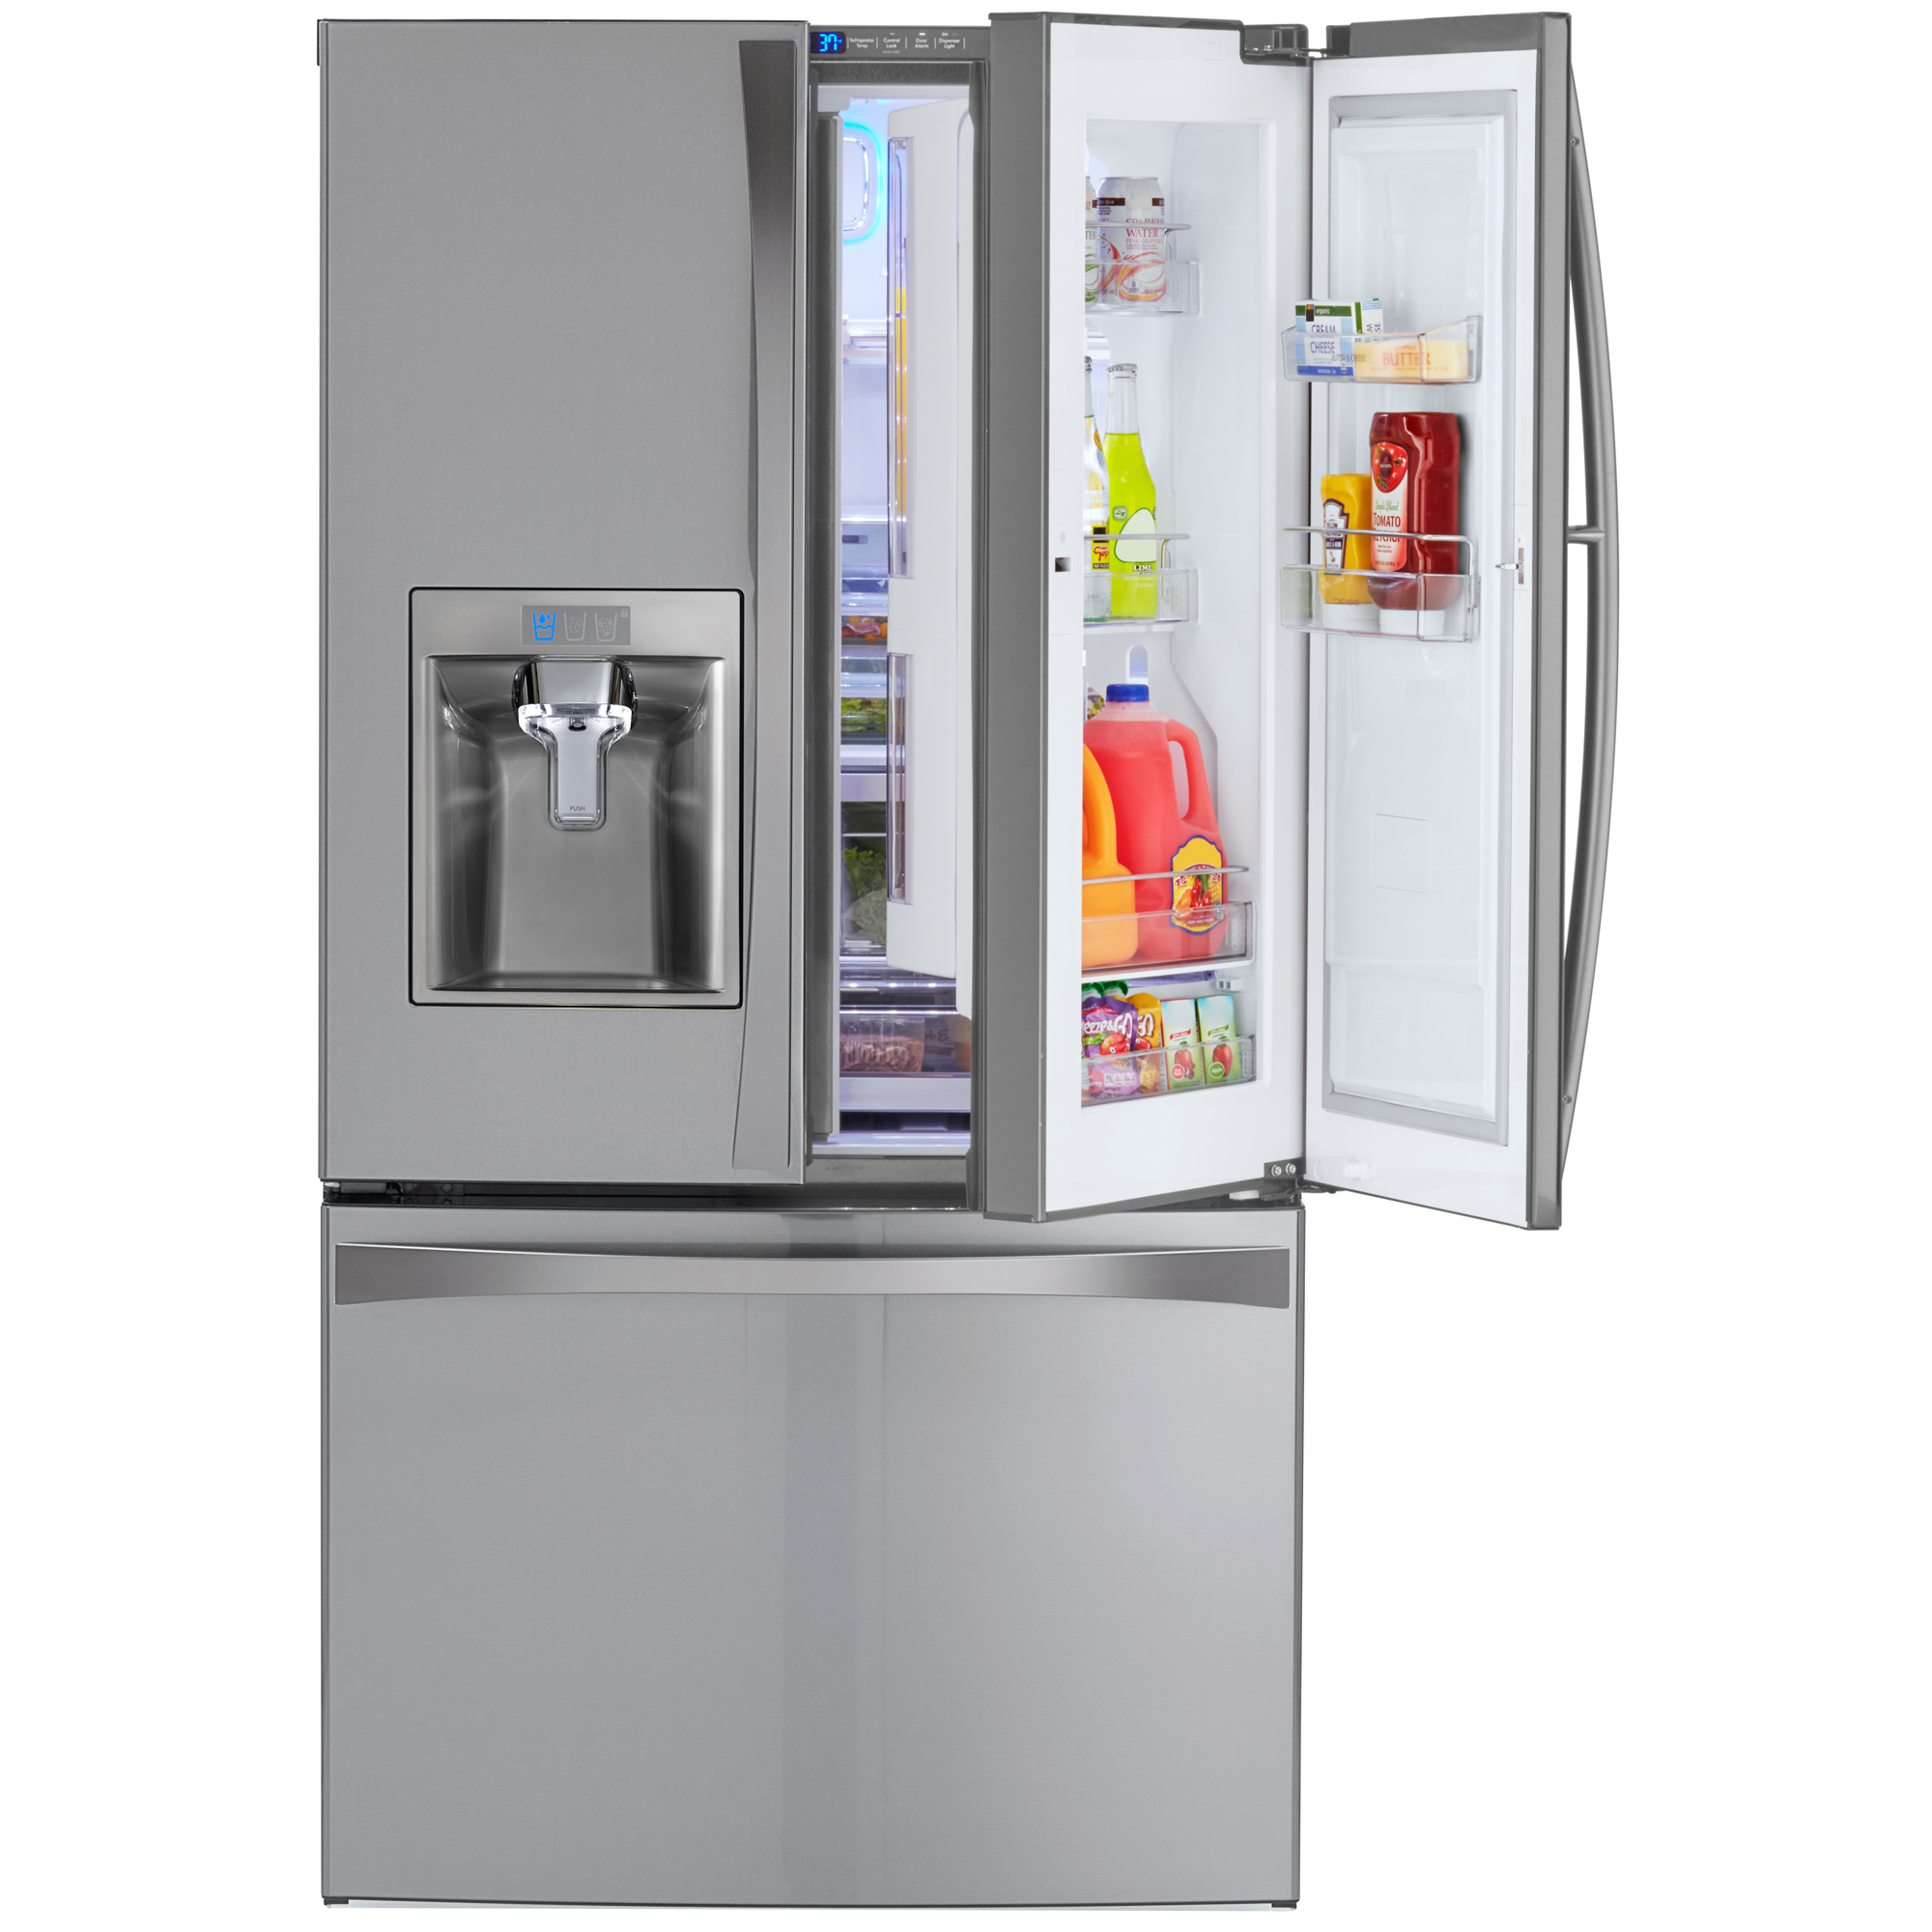 Kenmore Elite 73165 28.5 cu. ft. French Door Bottom Freezer Refrigerator w/ Grab-N-Go™ Door – Active Finish™